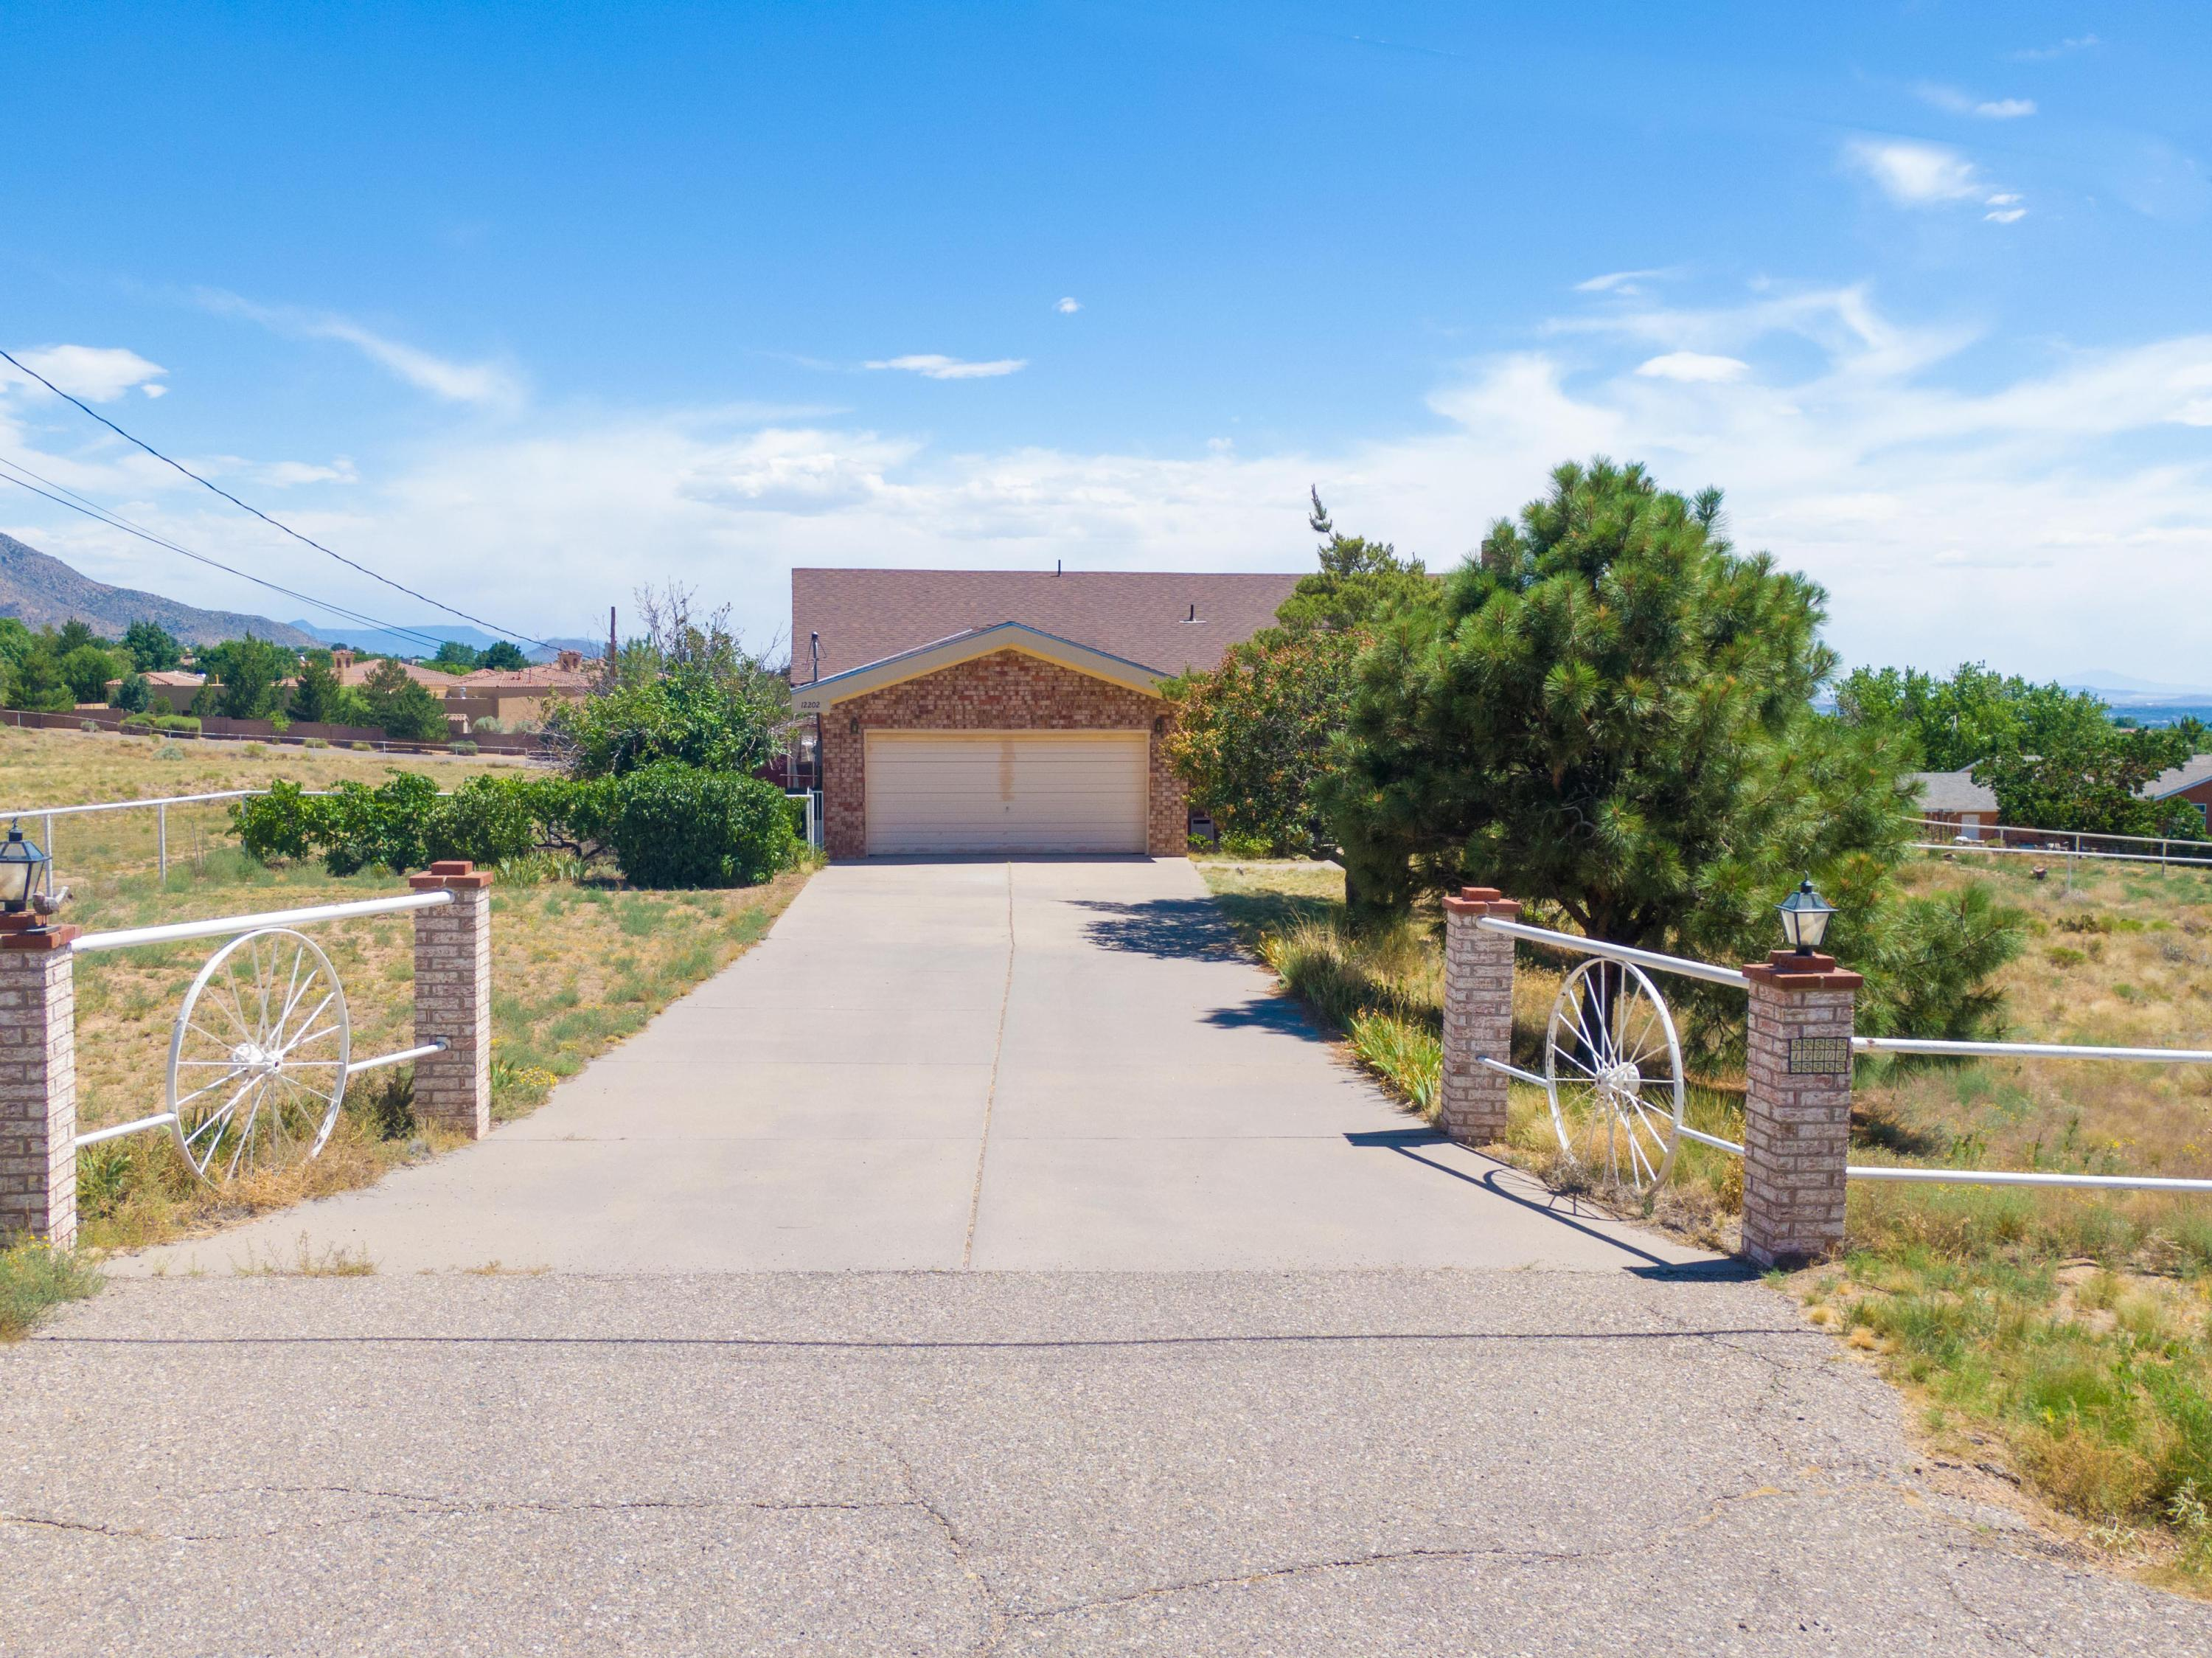 Welcome Home!  Remarkable Opportunity to own this original owner home in Albuquerque Acres!  Priced Aggressively for Quick Sale!  Fresh Paint and New Carpet. Breathtaking Mountain Views! Tremendous value in the lot alone!  Highly sought after school districts! Come see this home today!